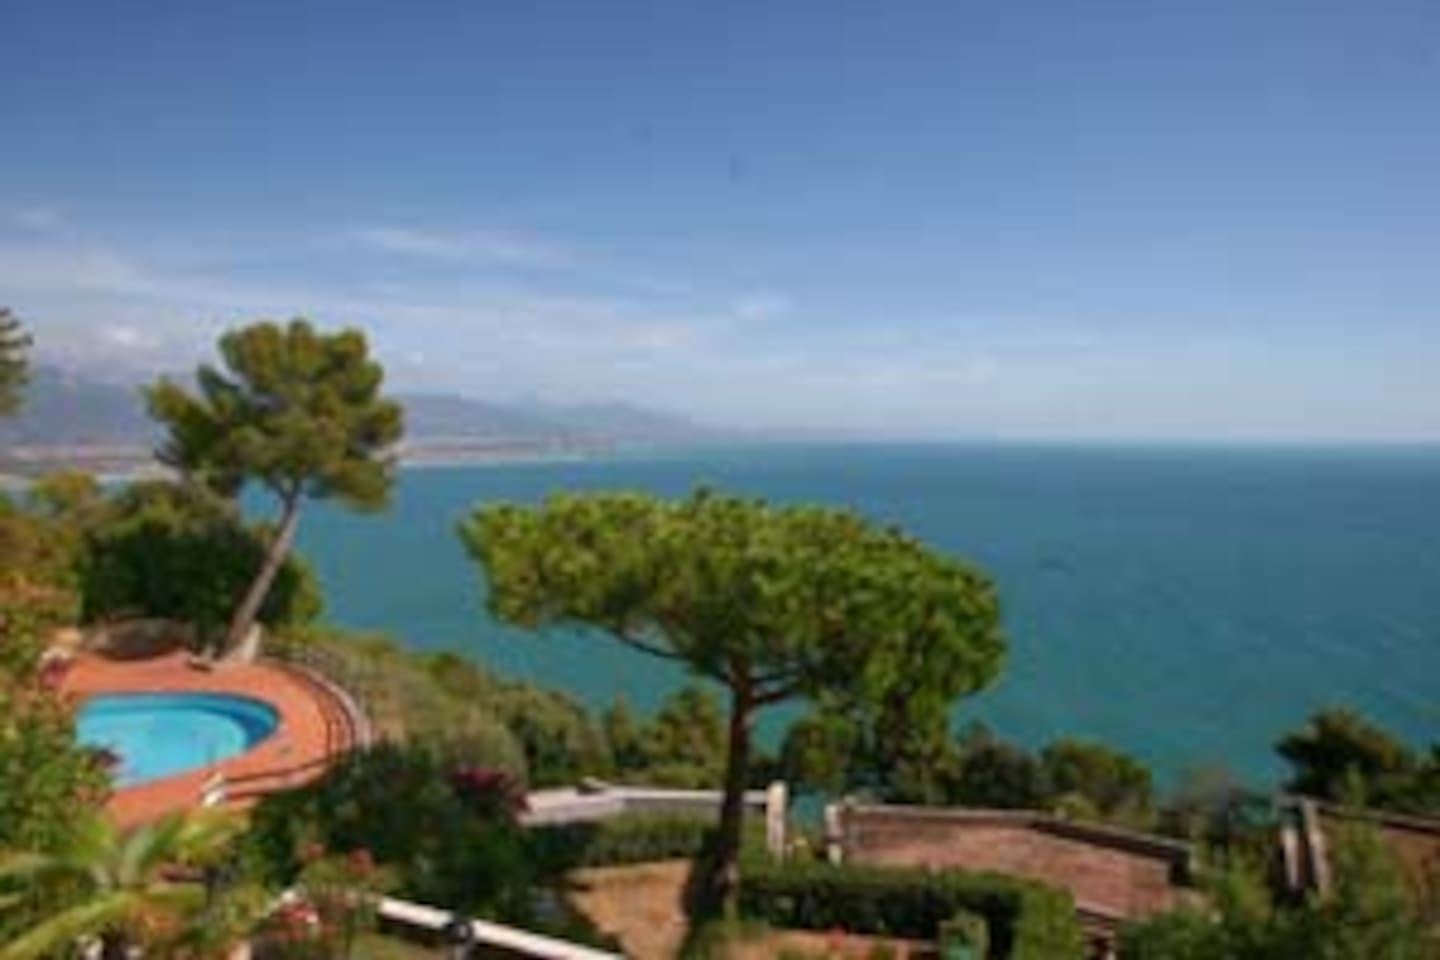 This is the view you have from your terrace! All the Tuscan coast all the way to Livorno and marble queries